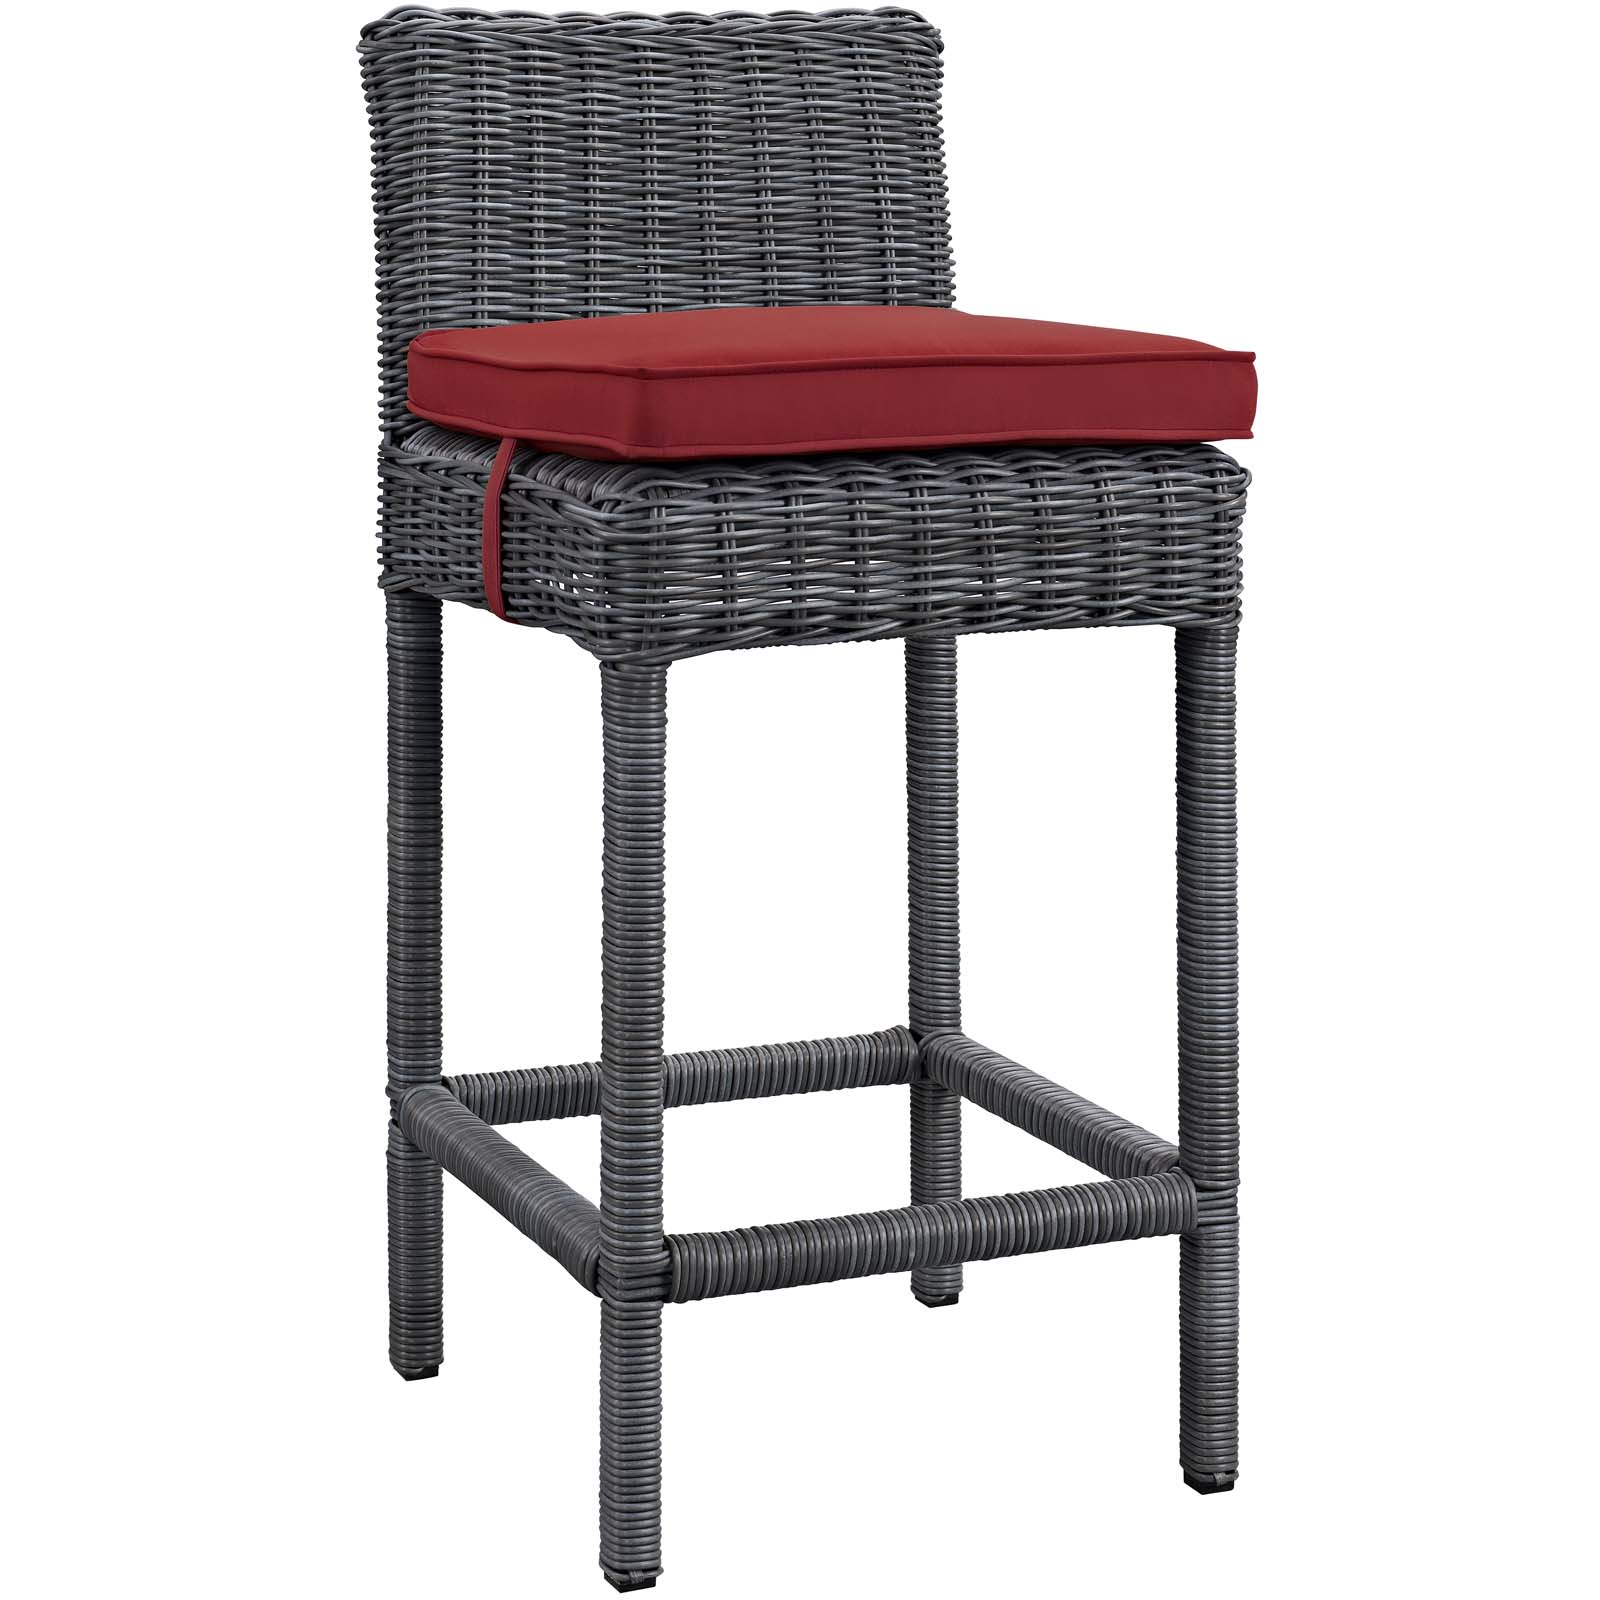 Modway Summon Outdoor Patio Sunbrella® Bar Stool, Multiple Colors